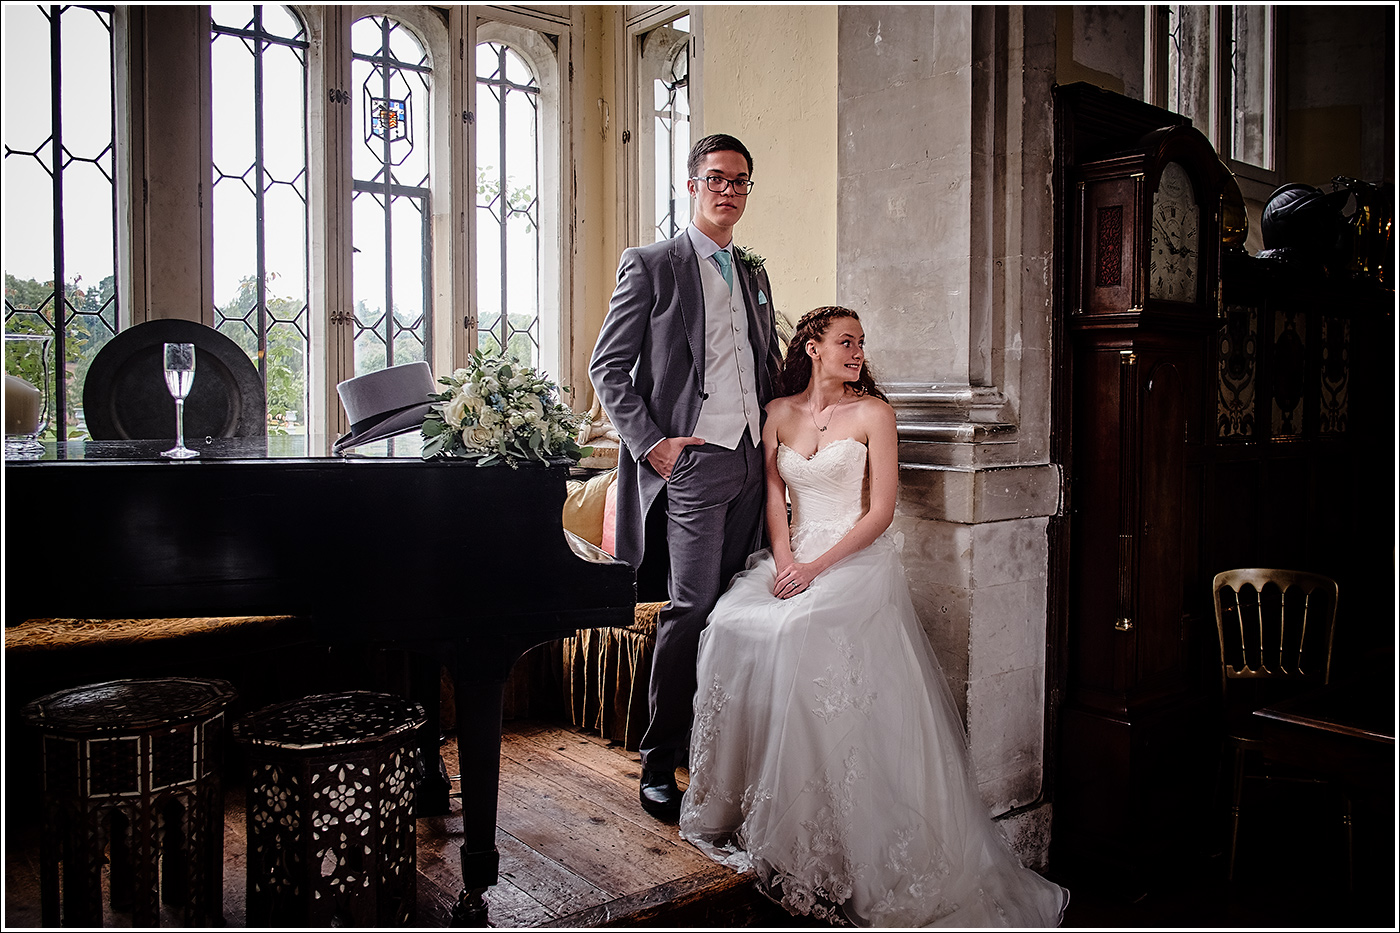 Official Loseley Park Wedding Photographer in Godalming